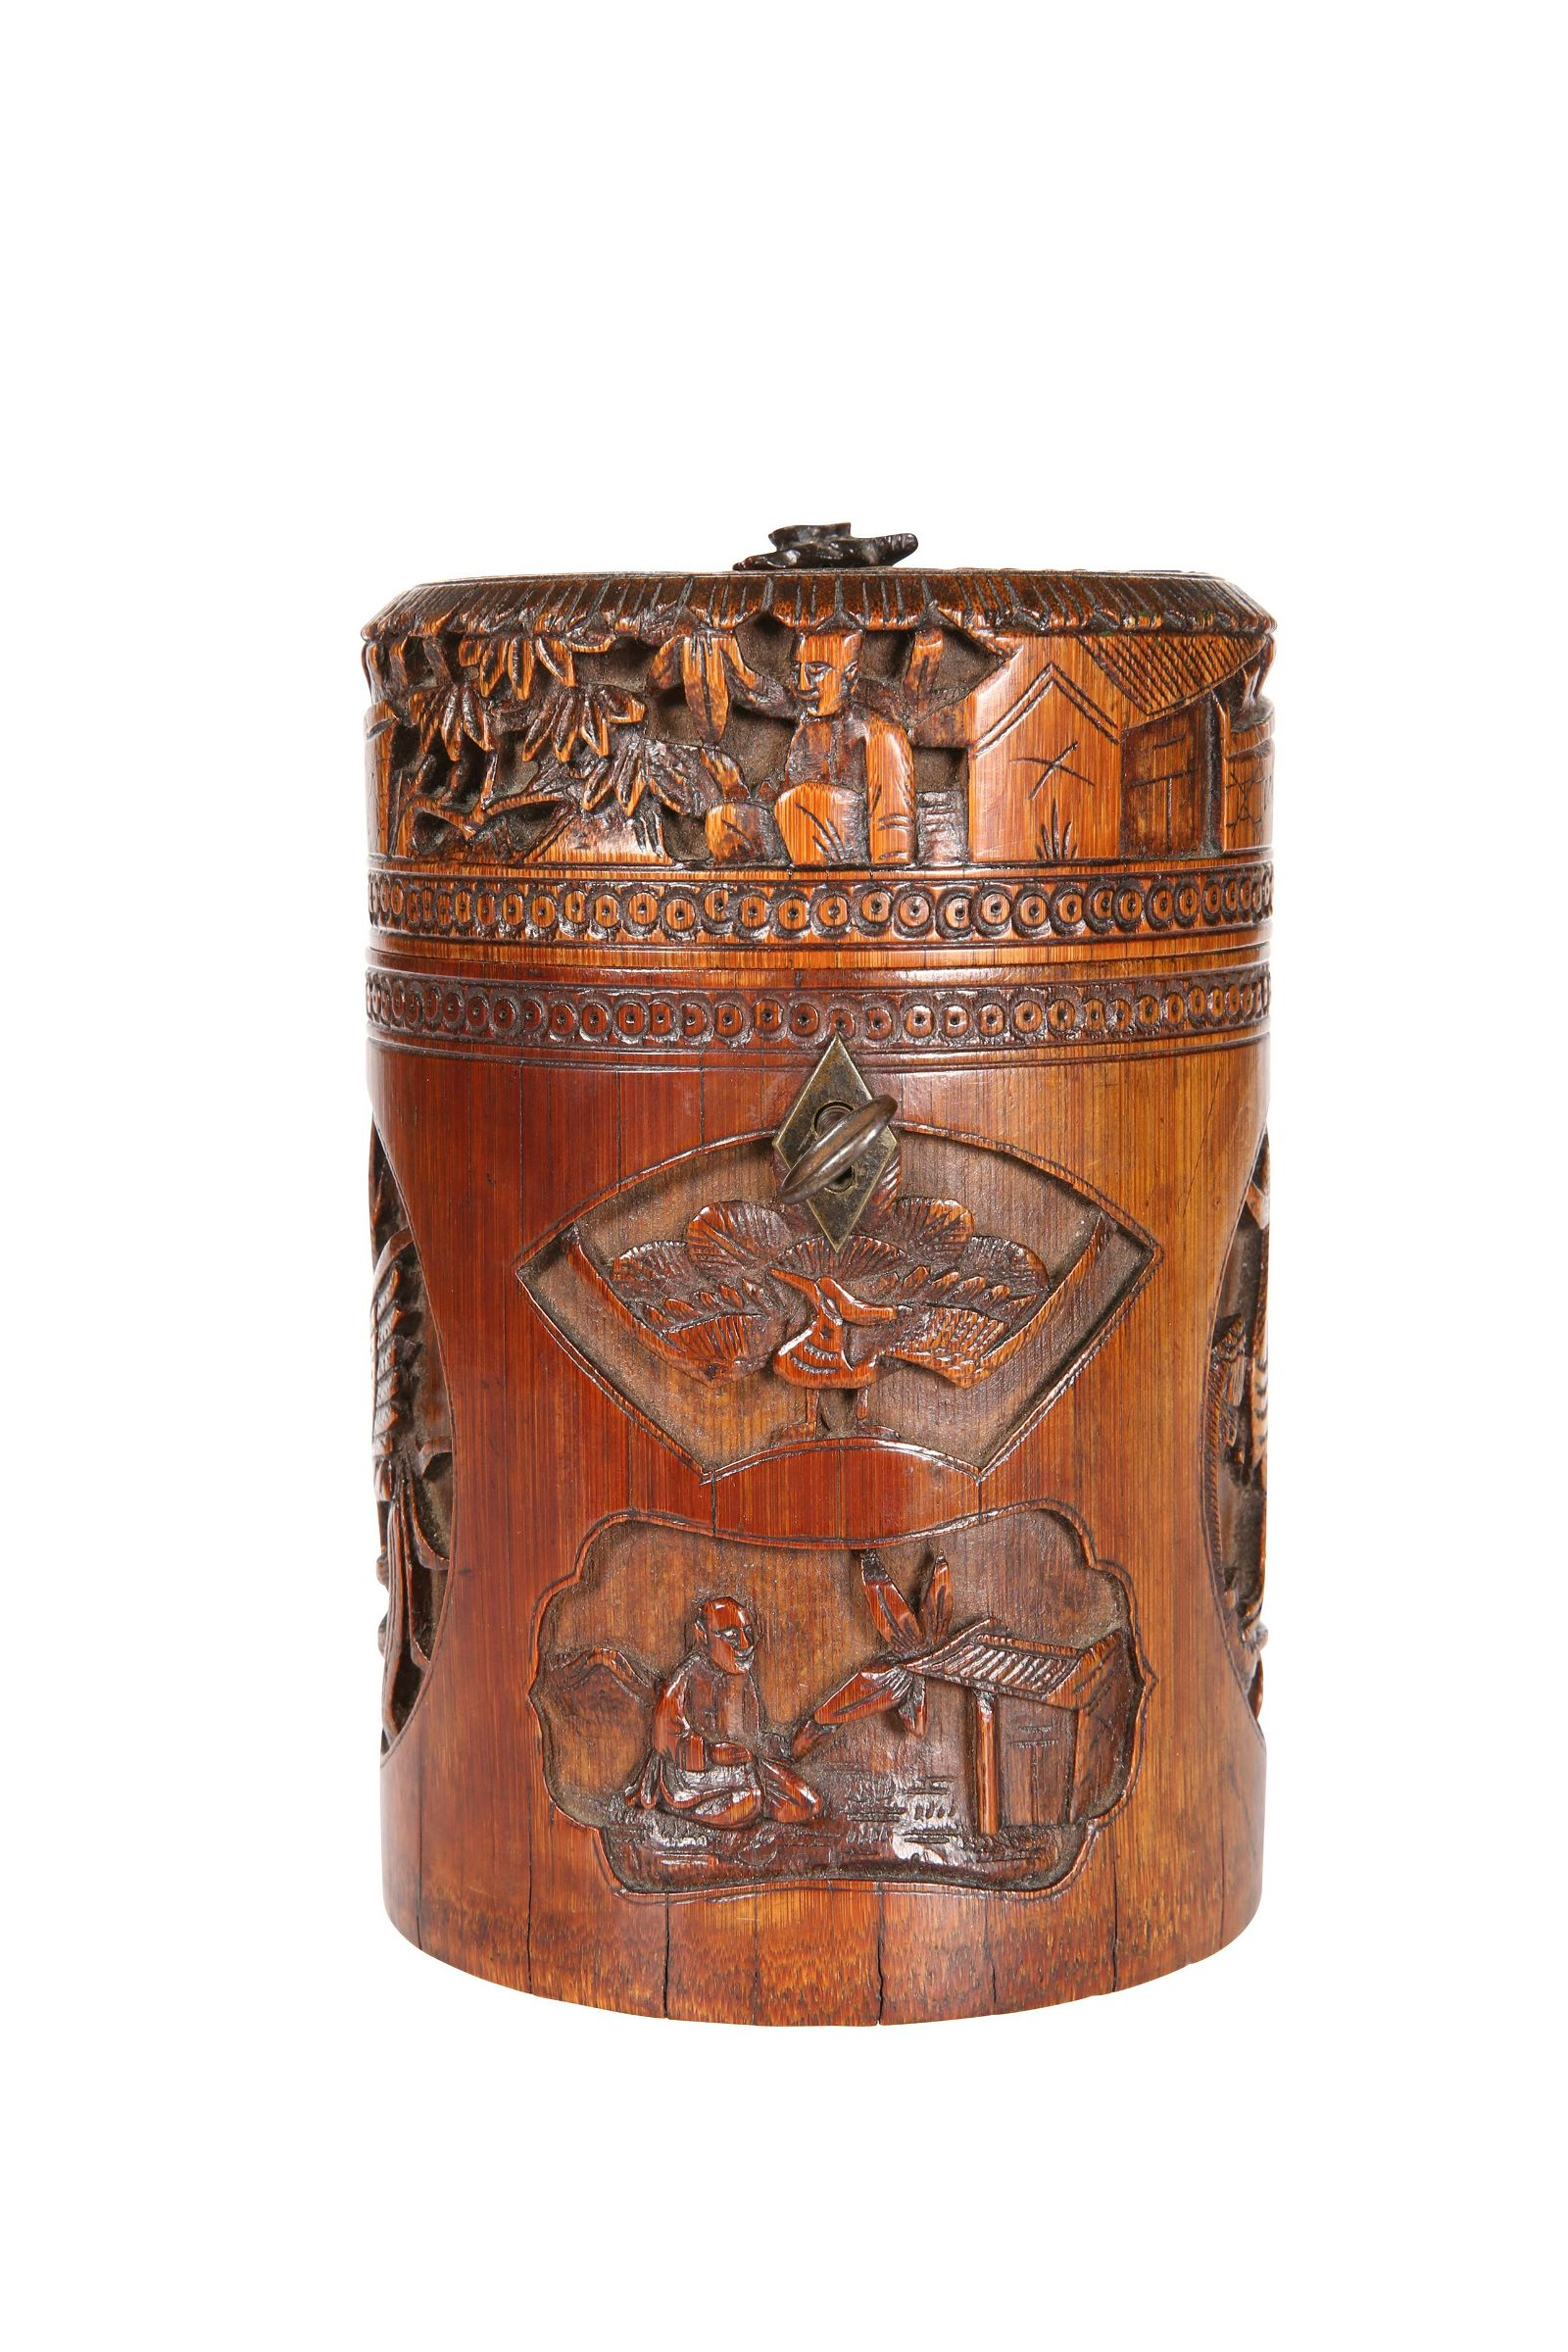 A CHINESE BAMBOO JAR AND COVER, 19TH CENTURY,